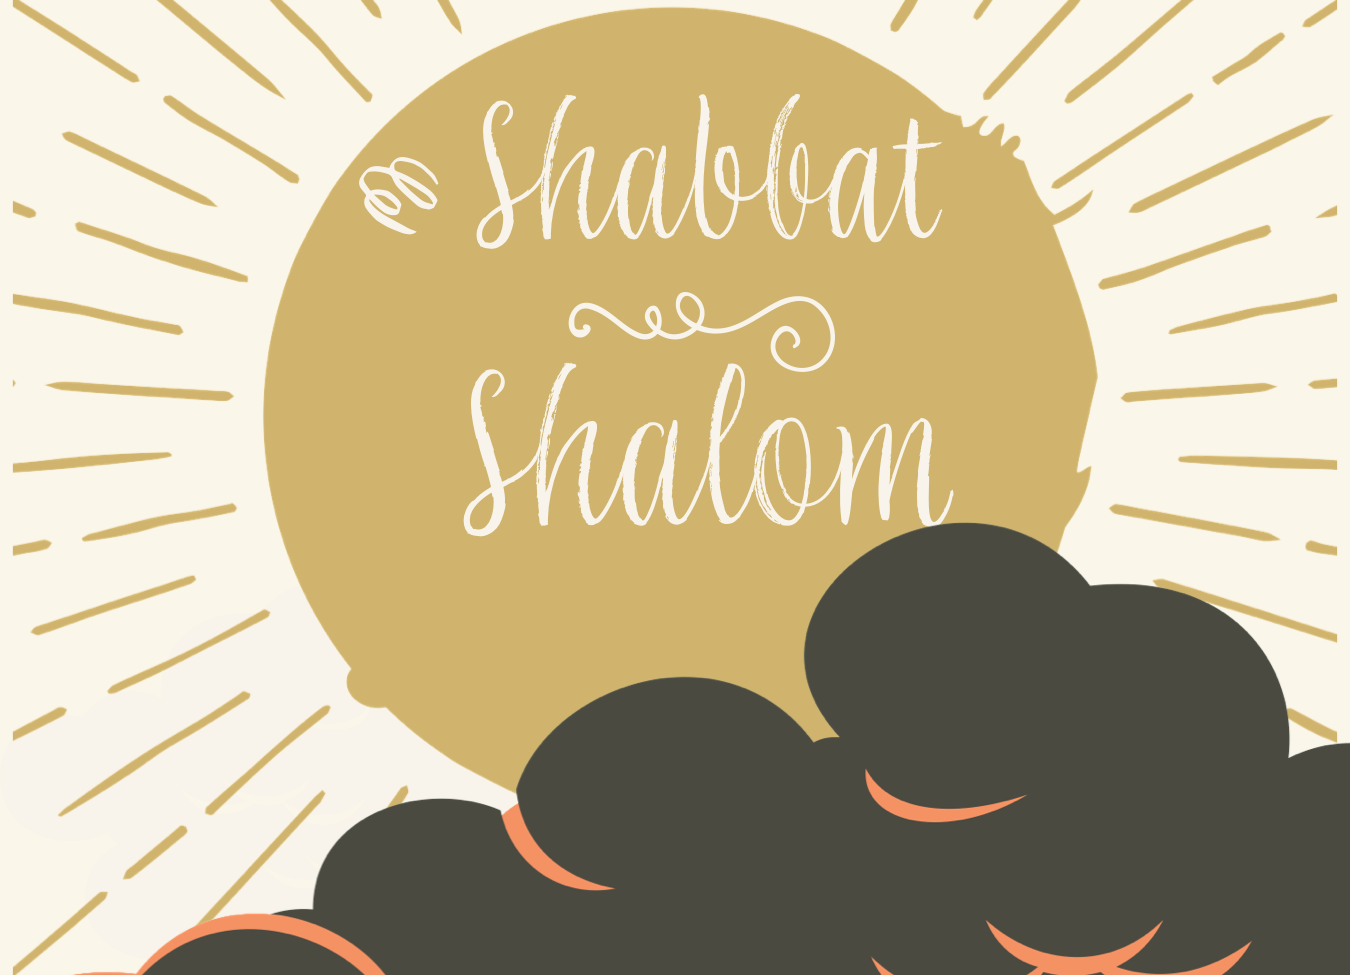 Kabbalat Shabbat Aug 7th, 7:30 pm